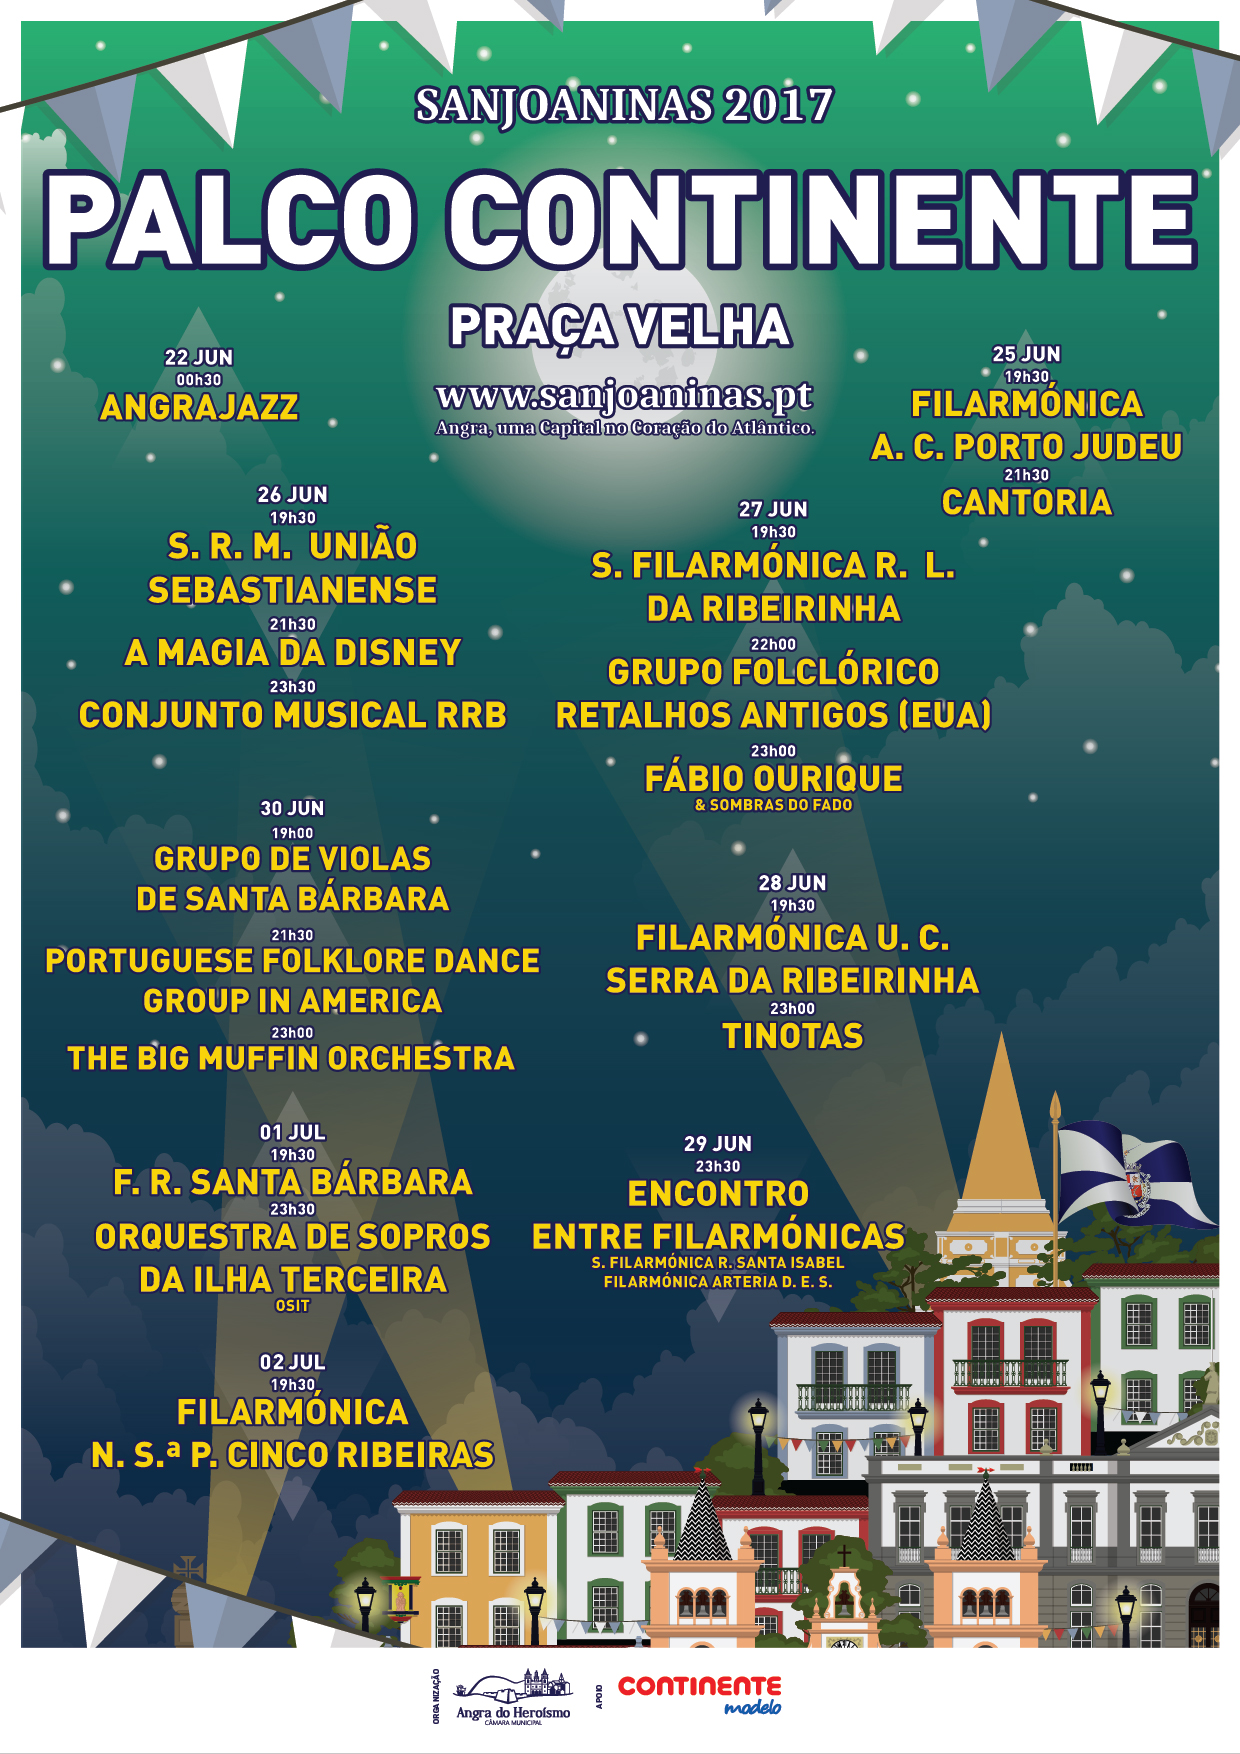 cartaz_sanjoaninas_2017_palco_continente_updated